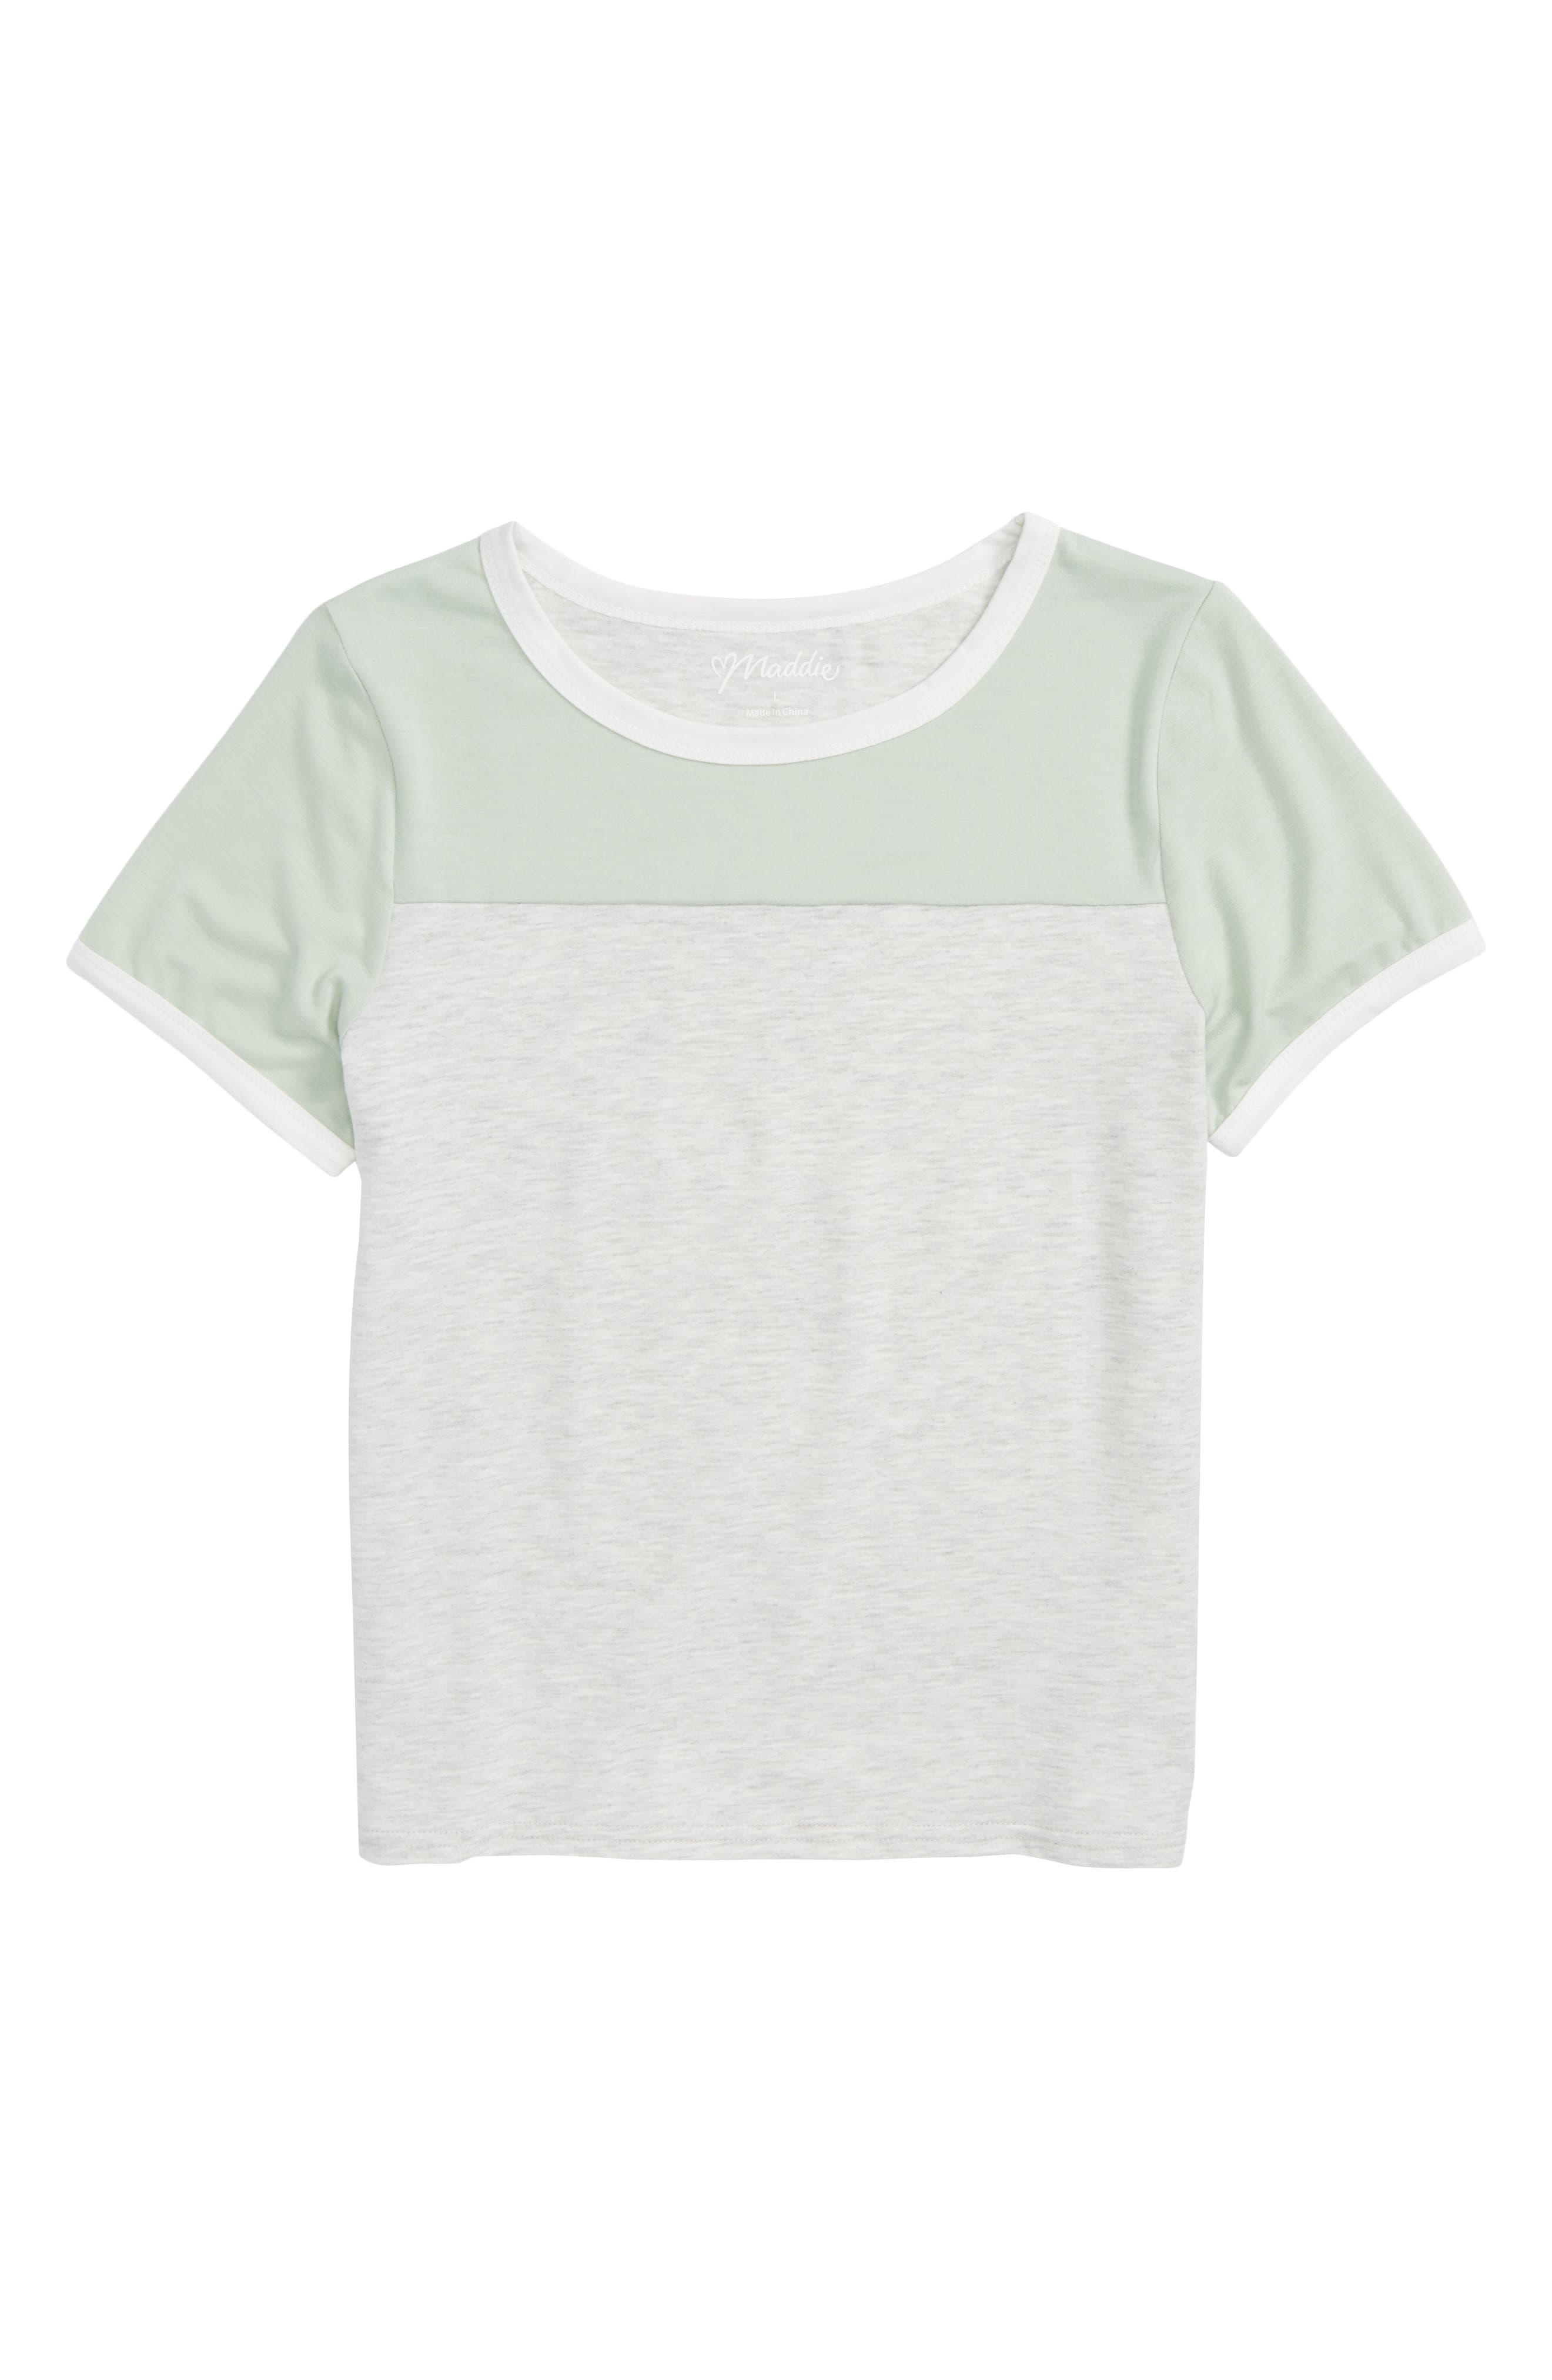 Colorblock Tee,                         Main,                         color, White/ Mint